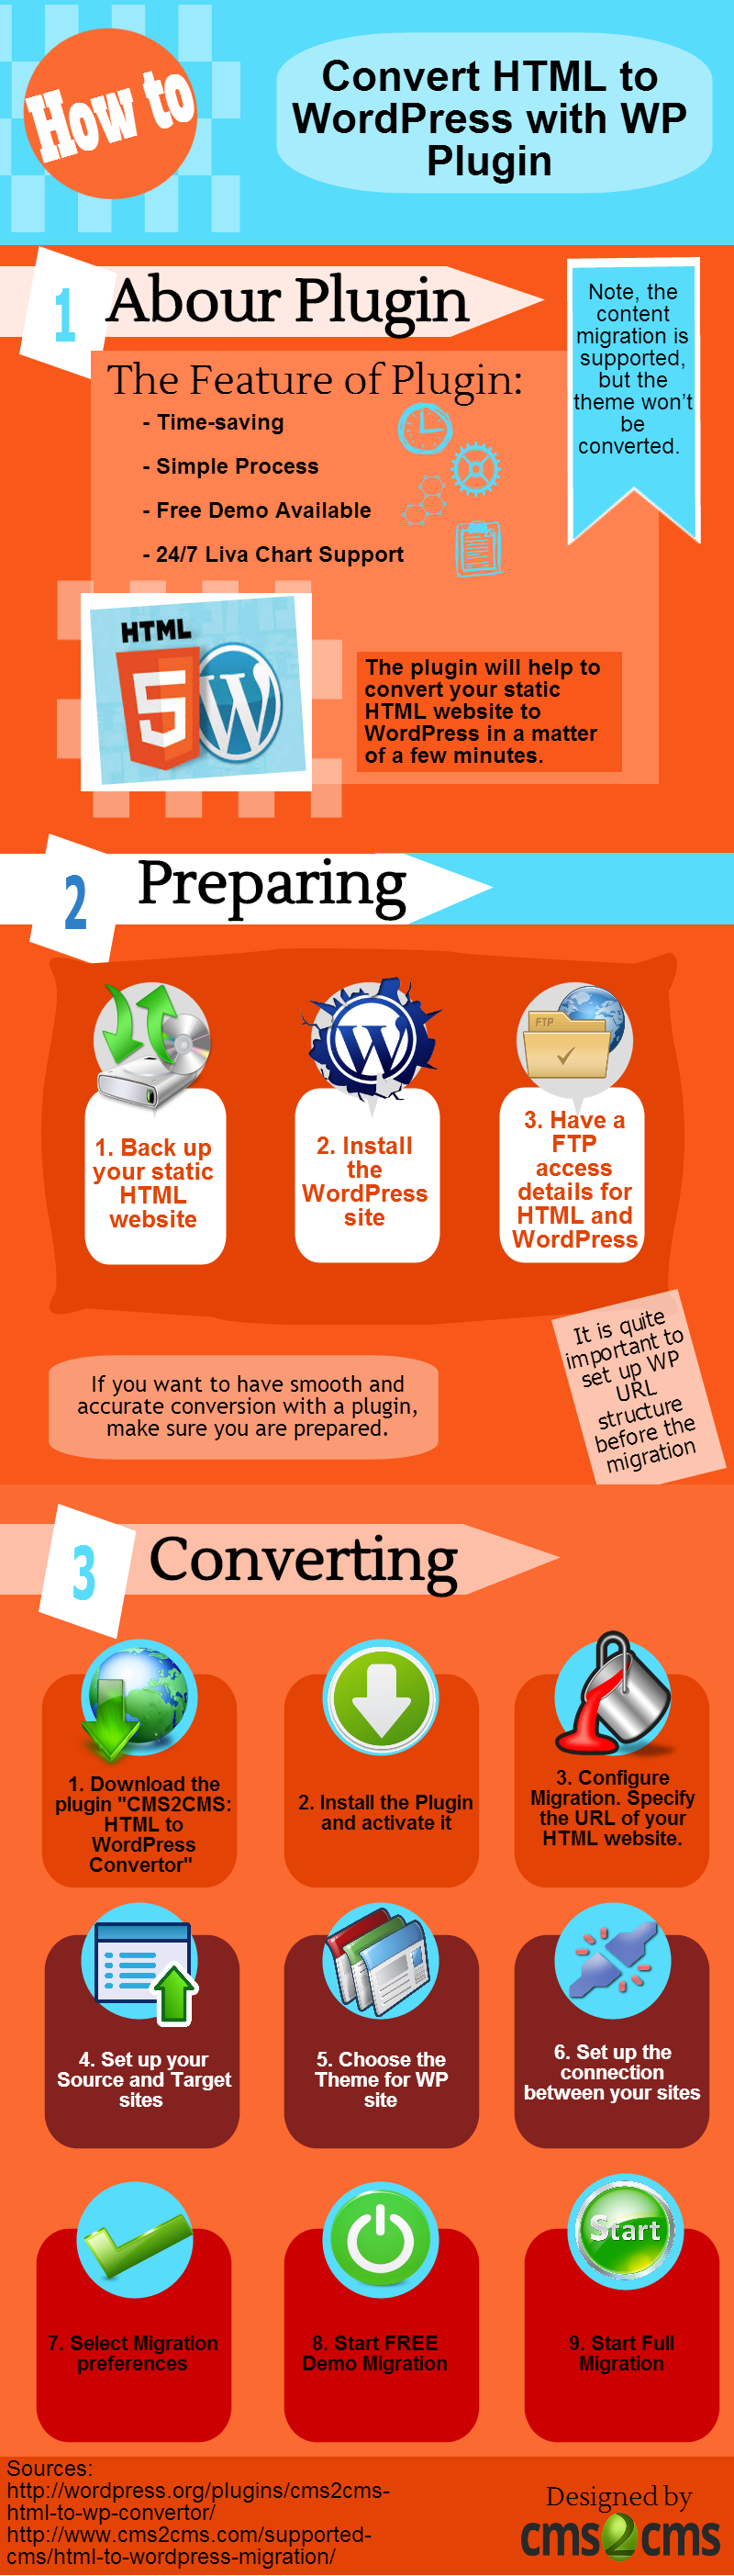 html-to-wordpress-migration-infographic